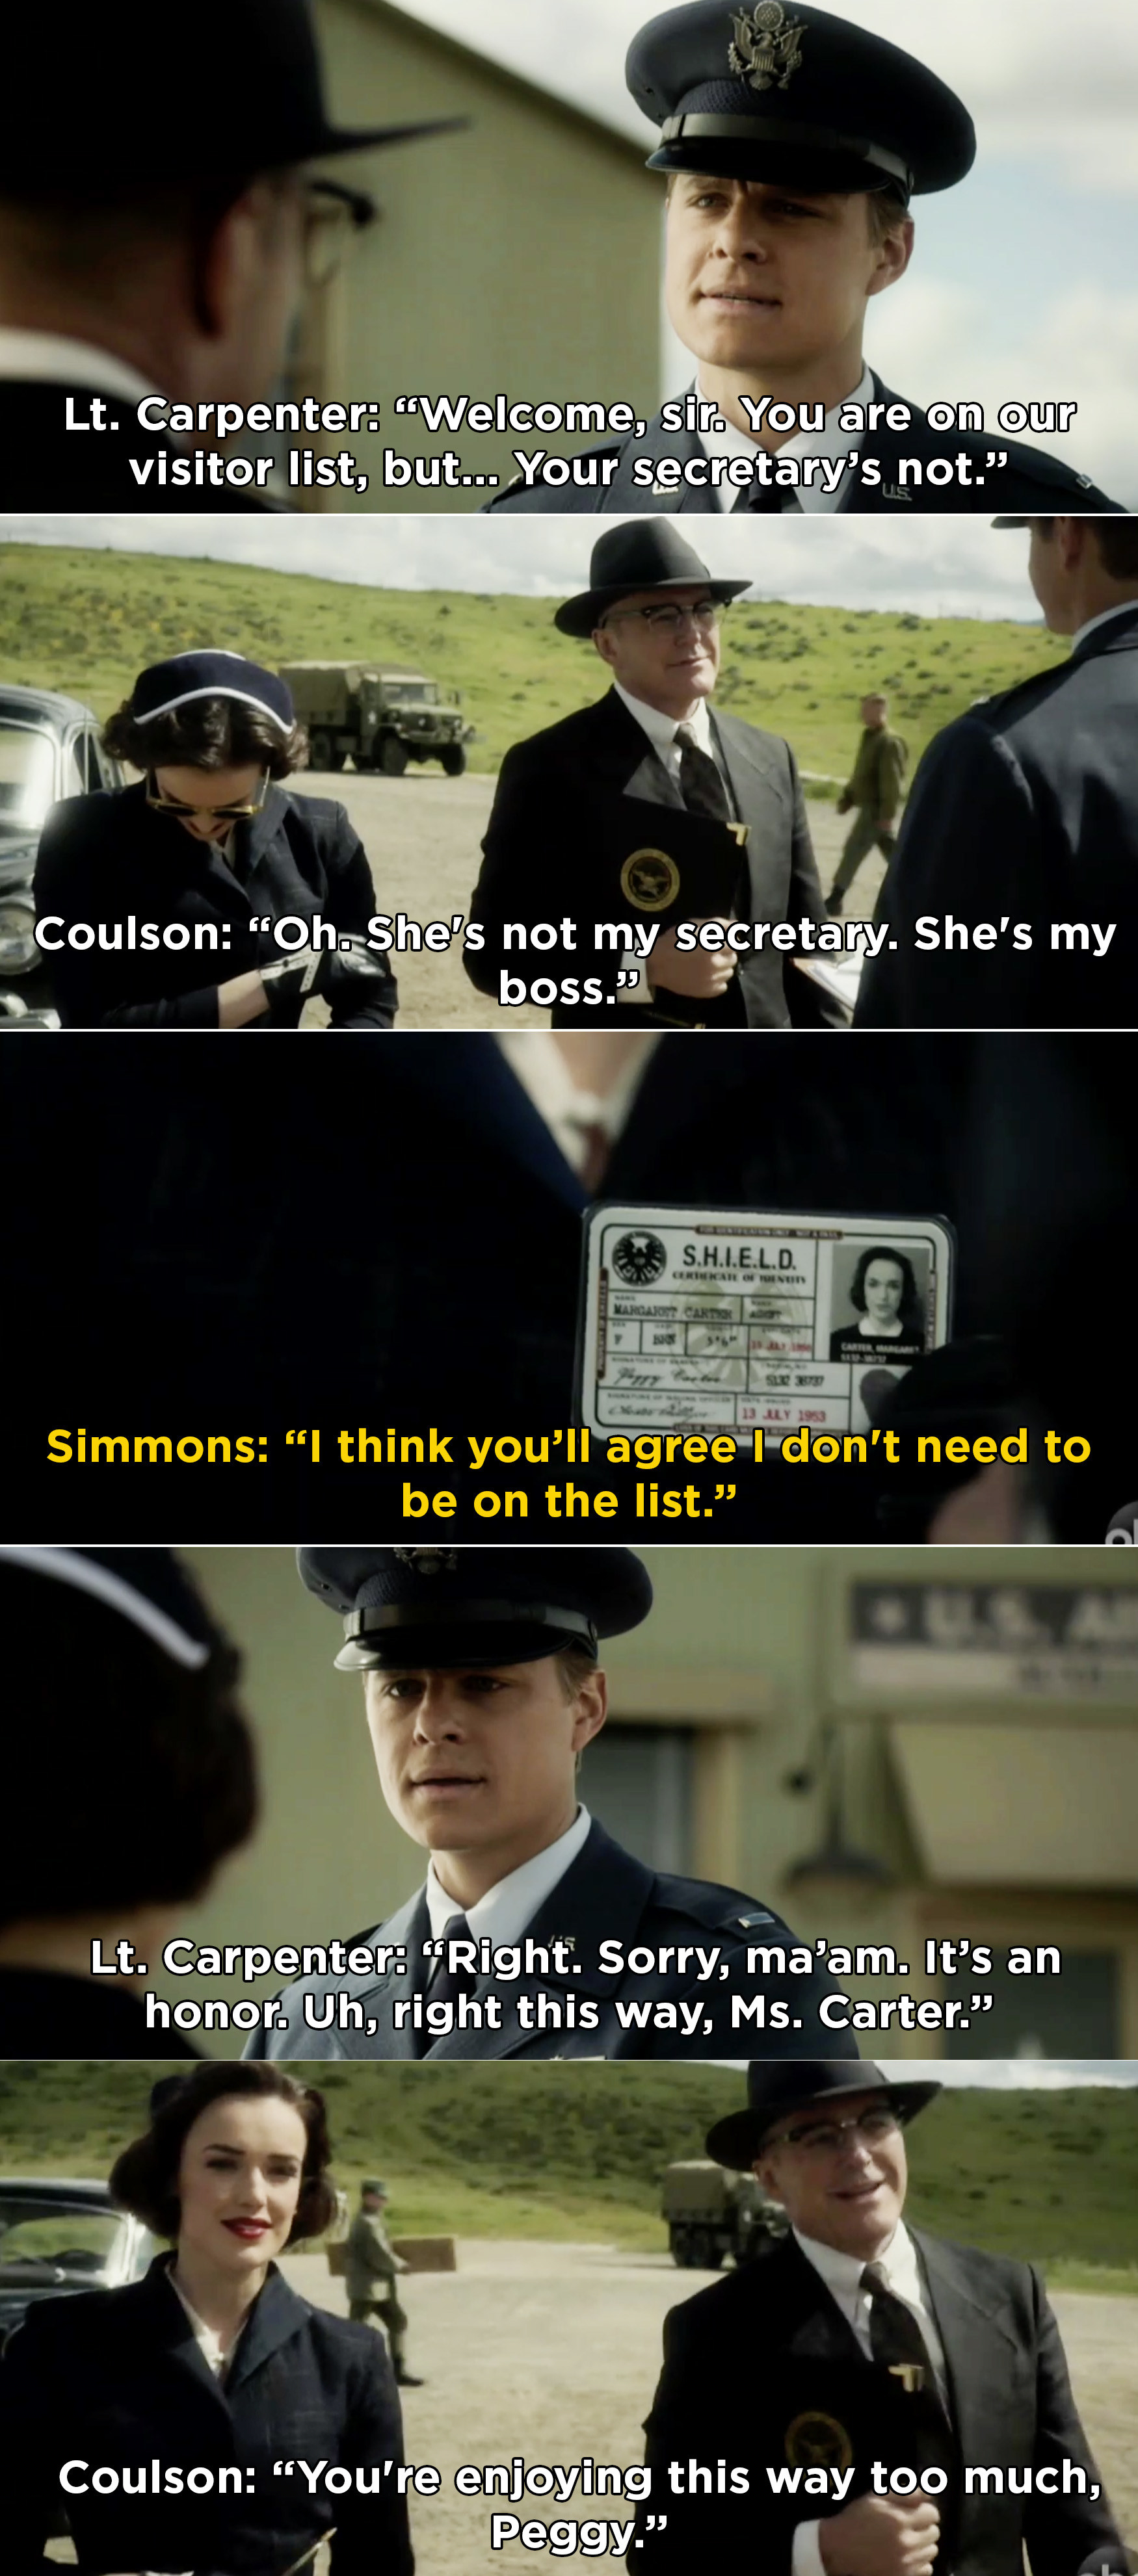 Simmons impersonating Peggy Carter and showing her SHIELD badge